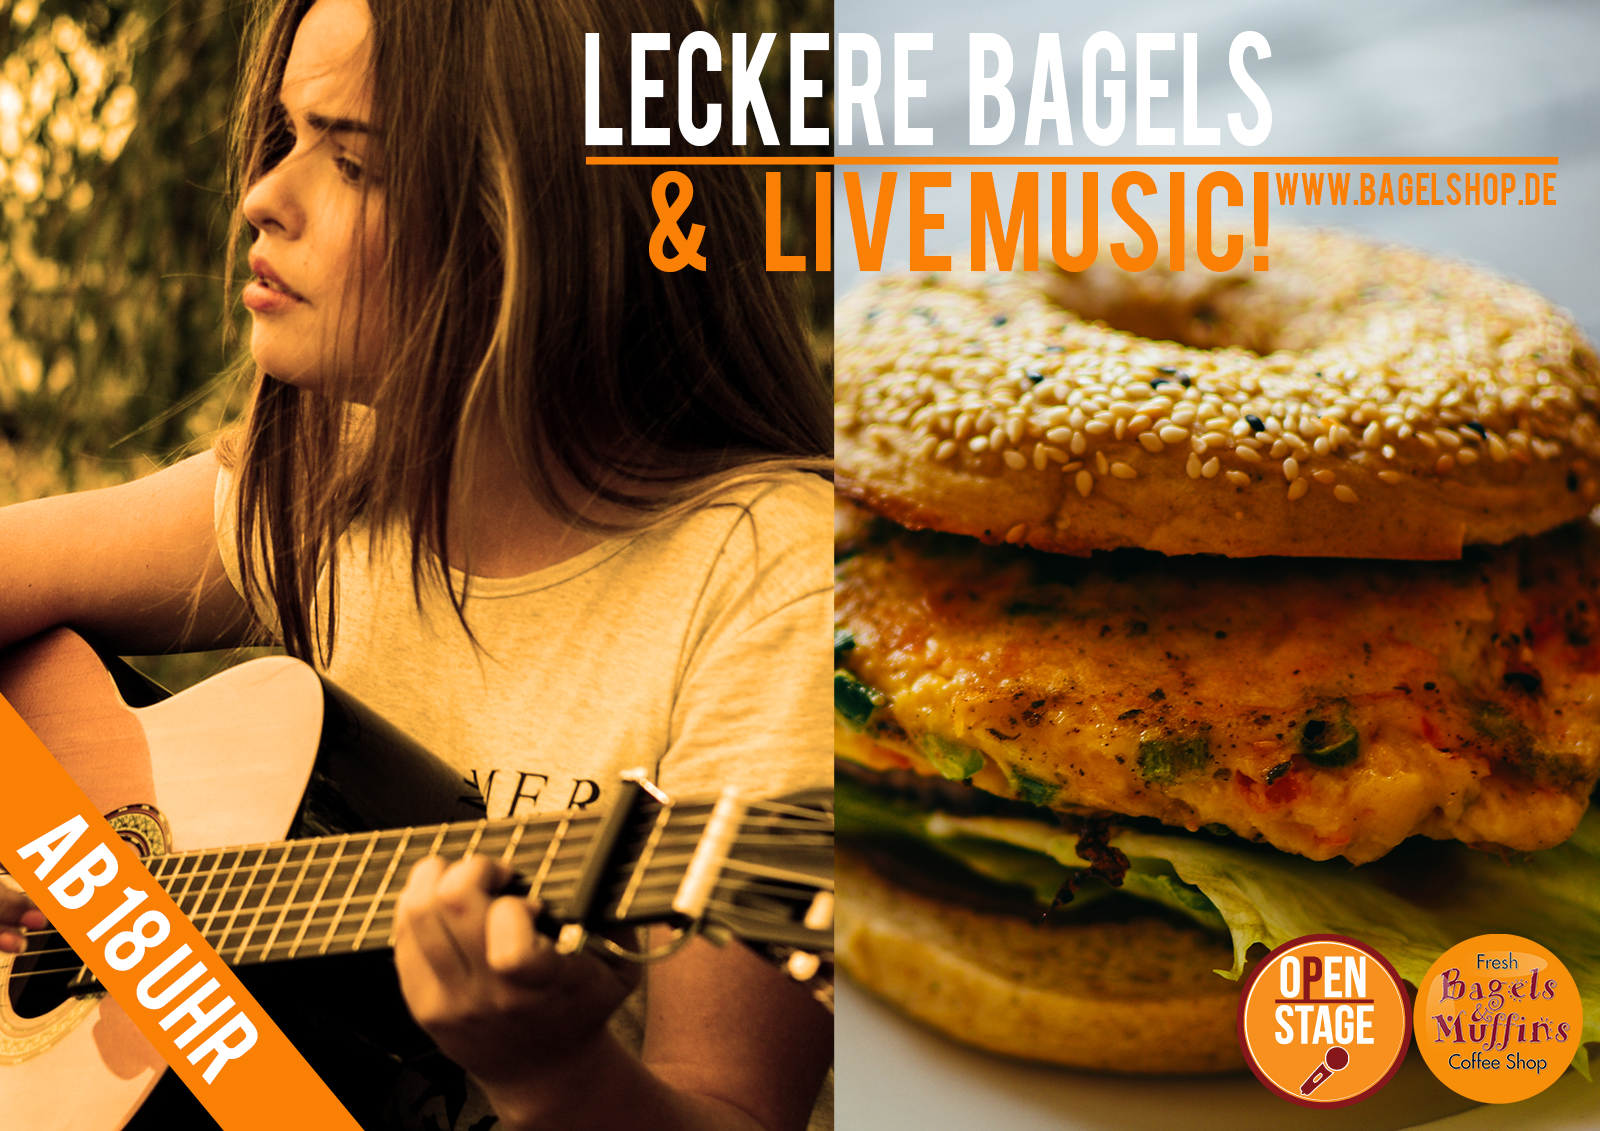 Open Stage: Live Music & leckere Bagels